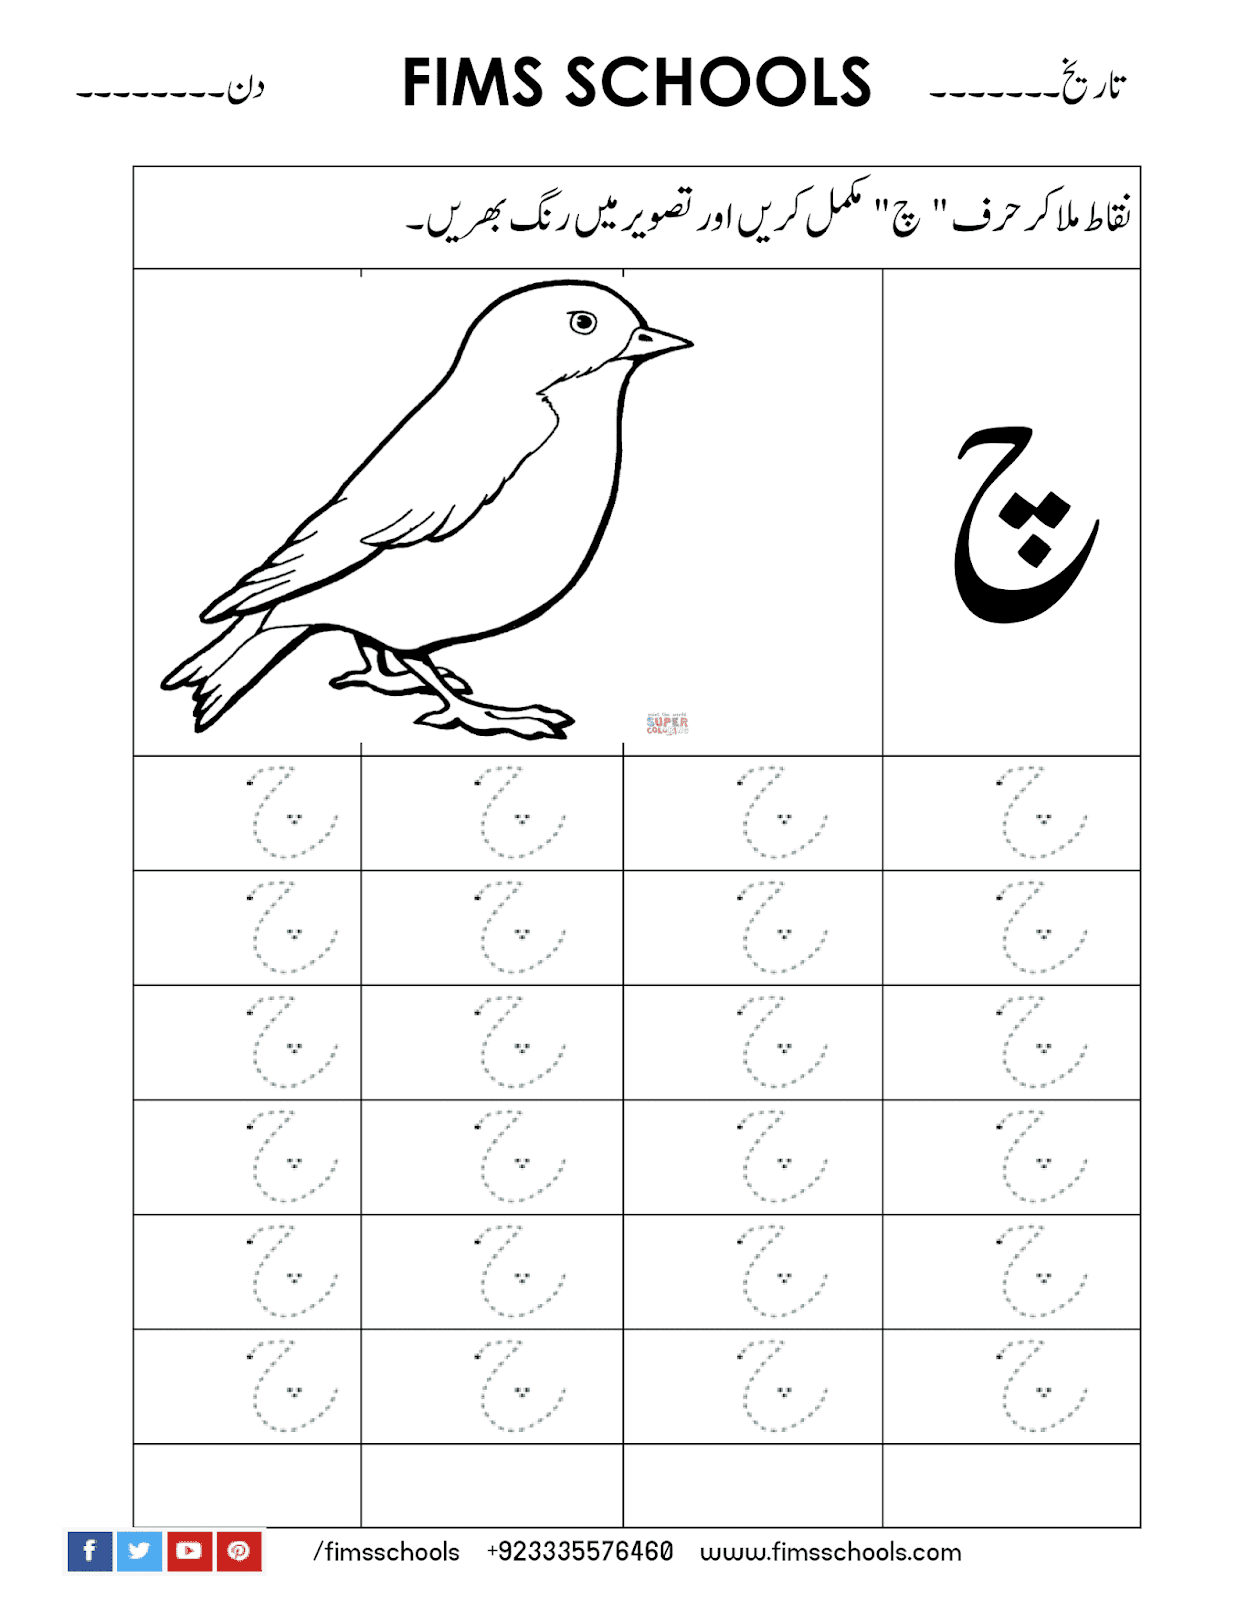 Urdu Alphabets Tracing Work Sheets In 2020 | Alphabet